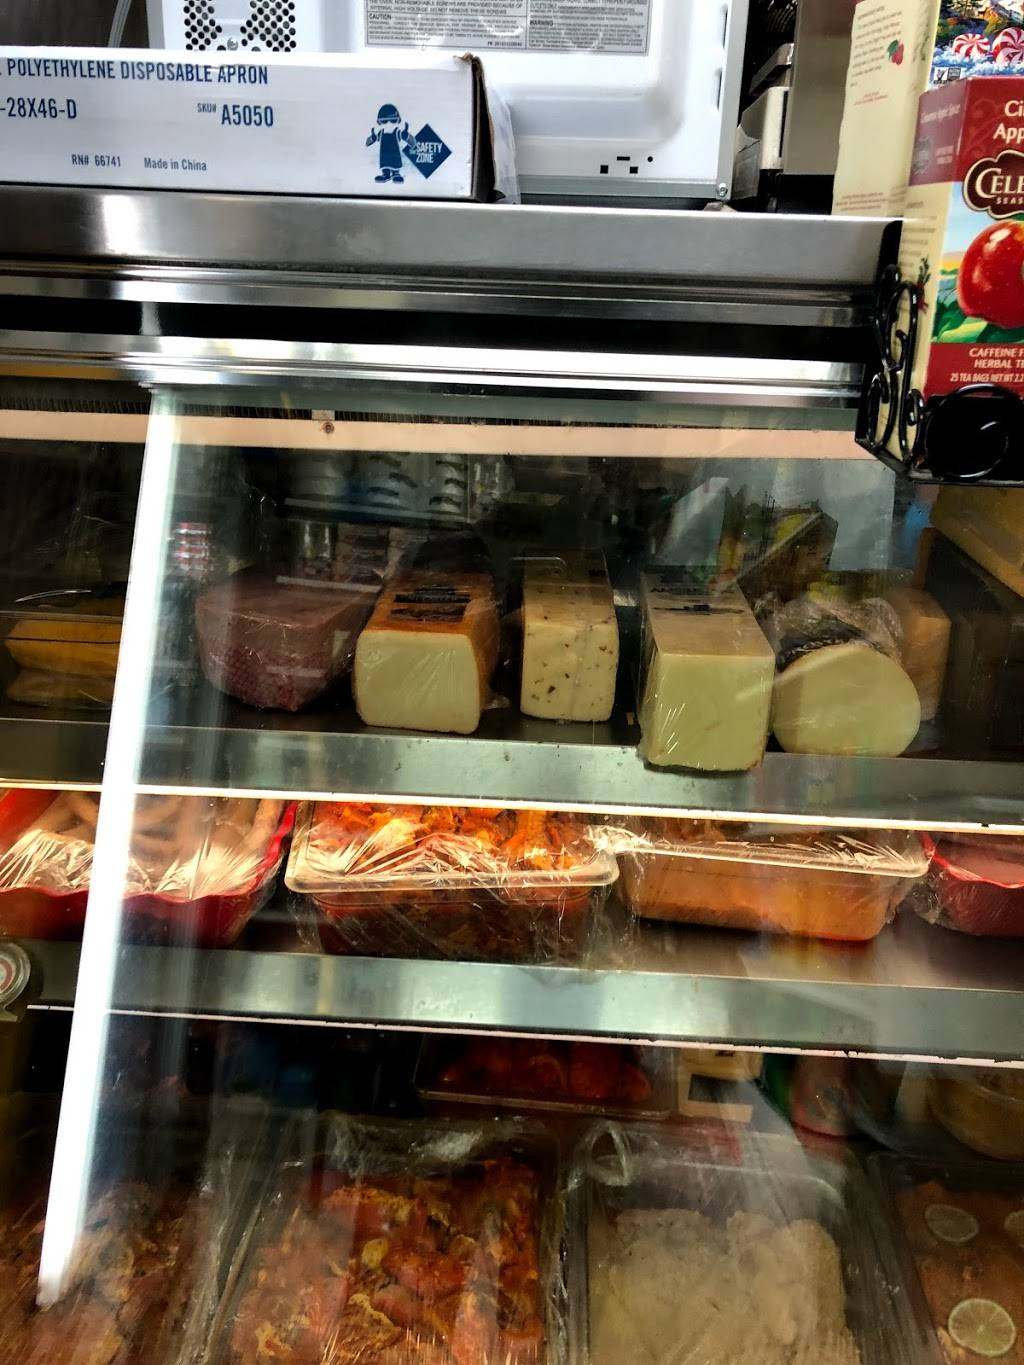 Adames Deli Grocery | restaurant | 113 Avenue D, New York, NY 10009, USA | 2125053257 OR +1 212-505-3257